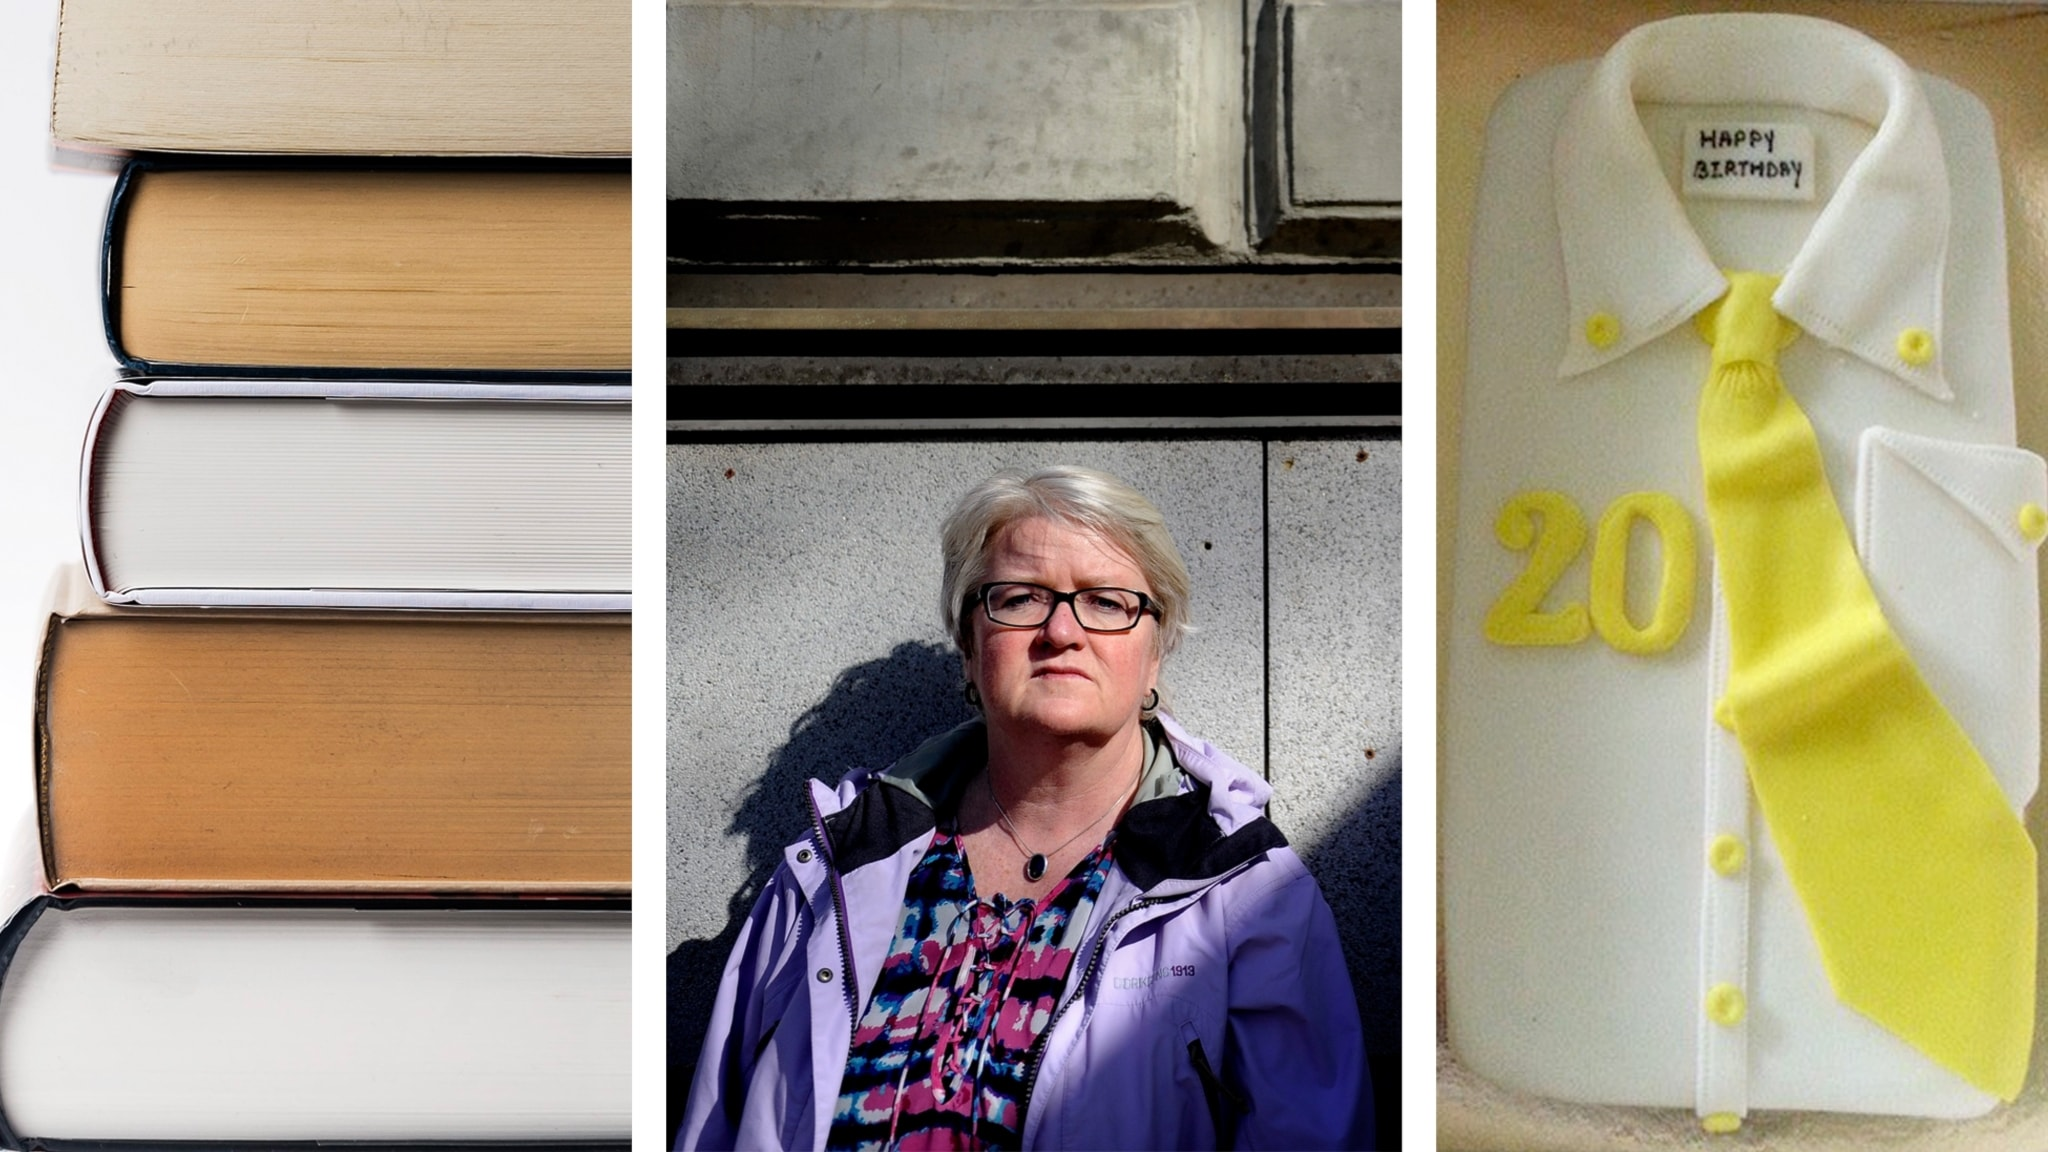 stack of books, portrait of a woman, a cake that looks like a button-down shirt with a yellow tie